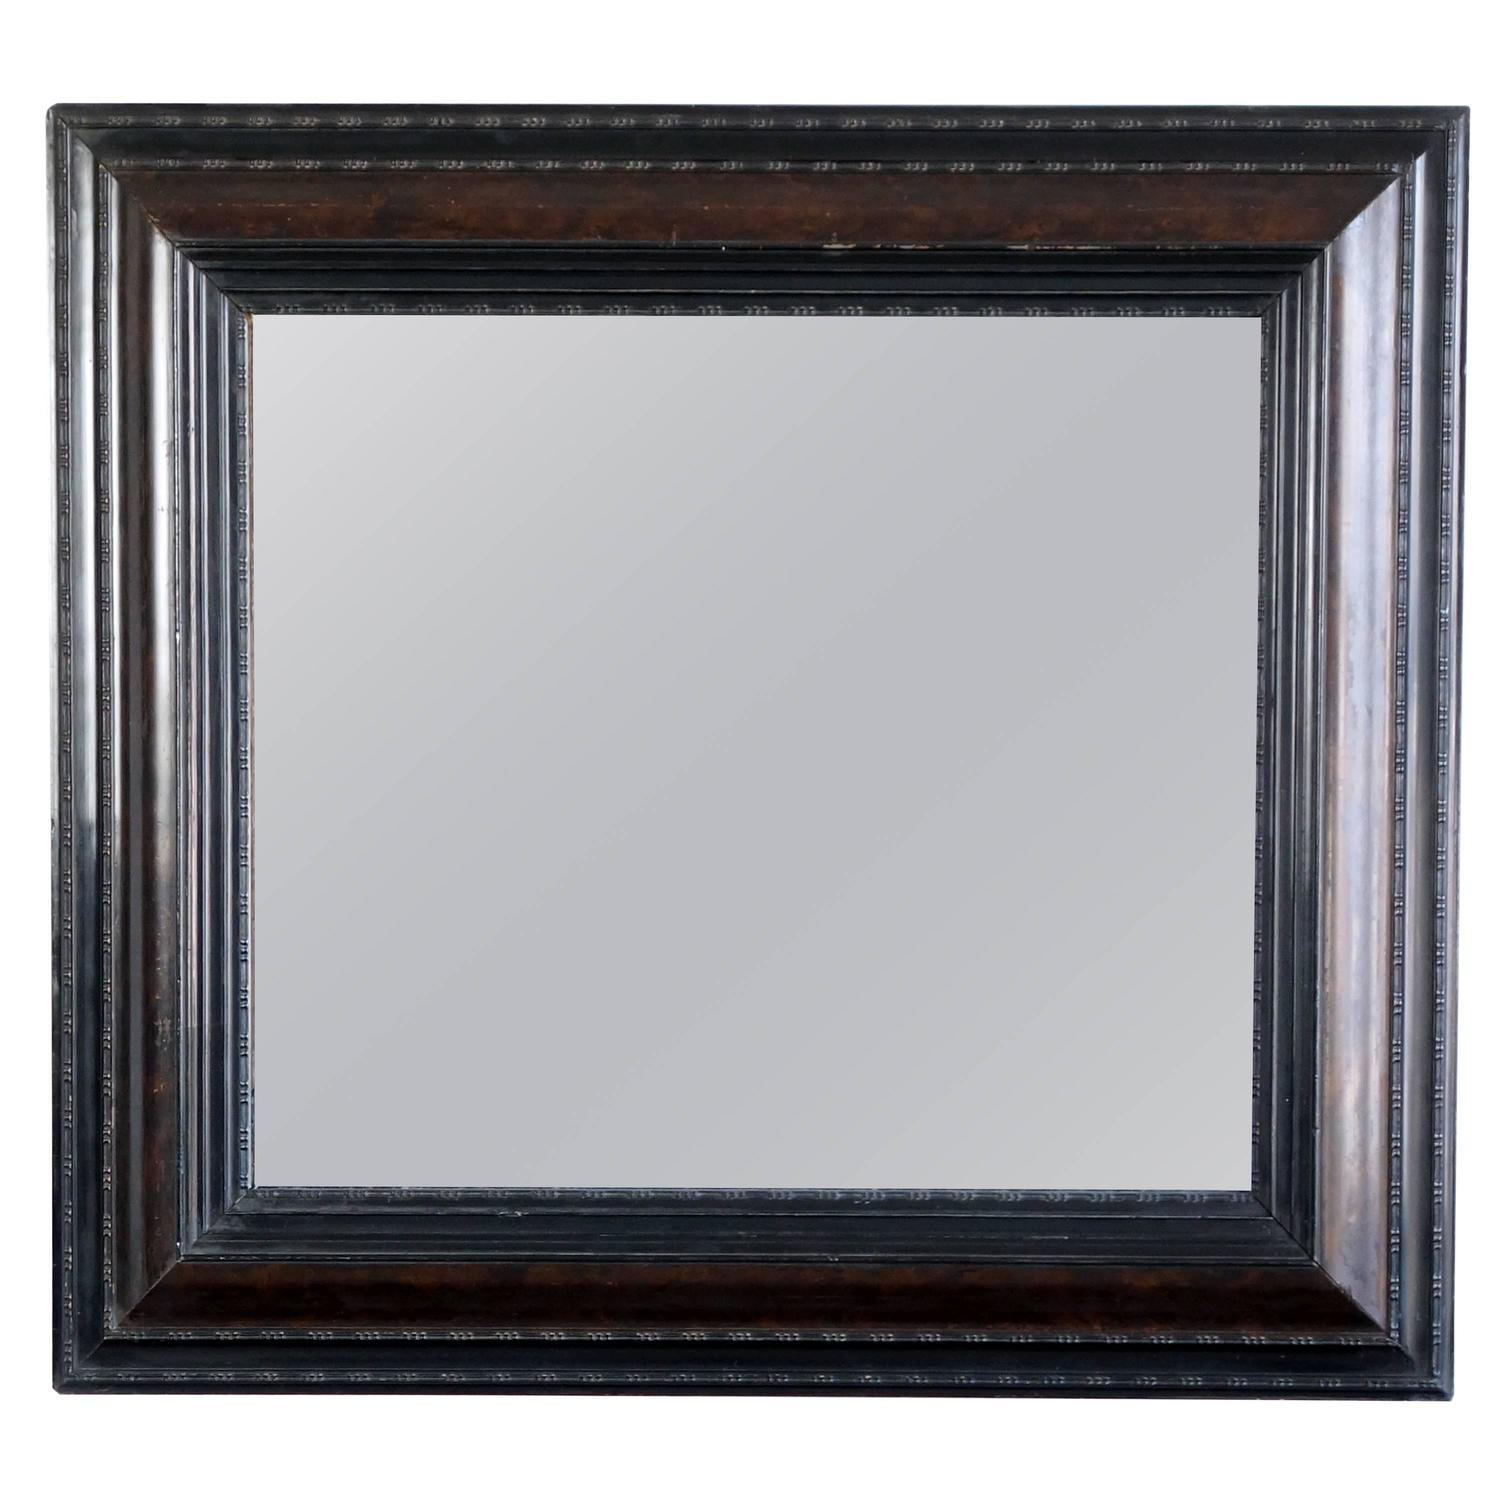 Dutch style 19th century frame with antiqued mirror at 1stdibs for Mirror frame styles